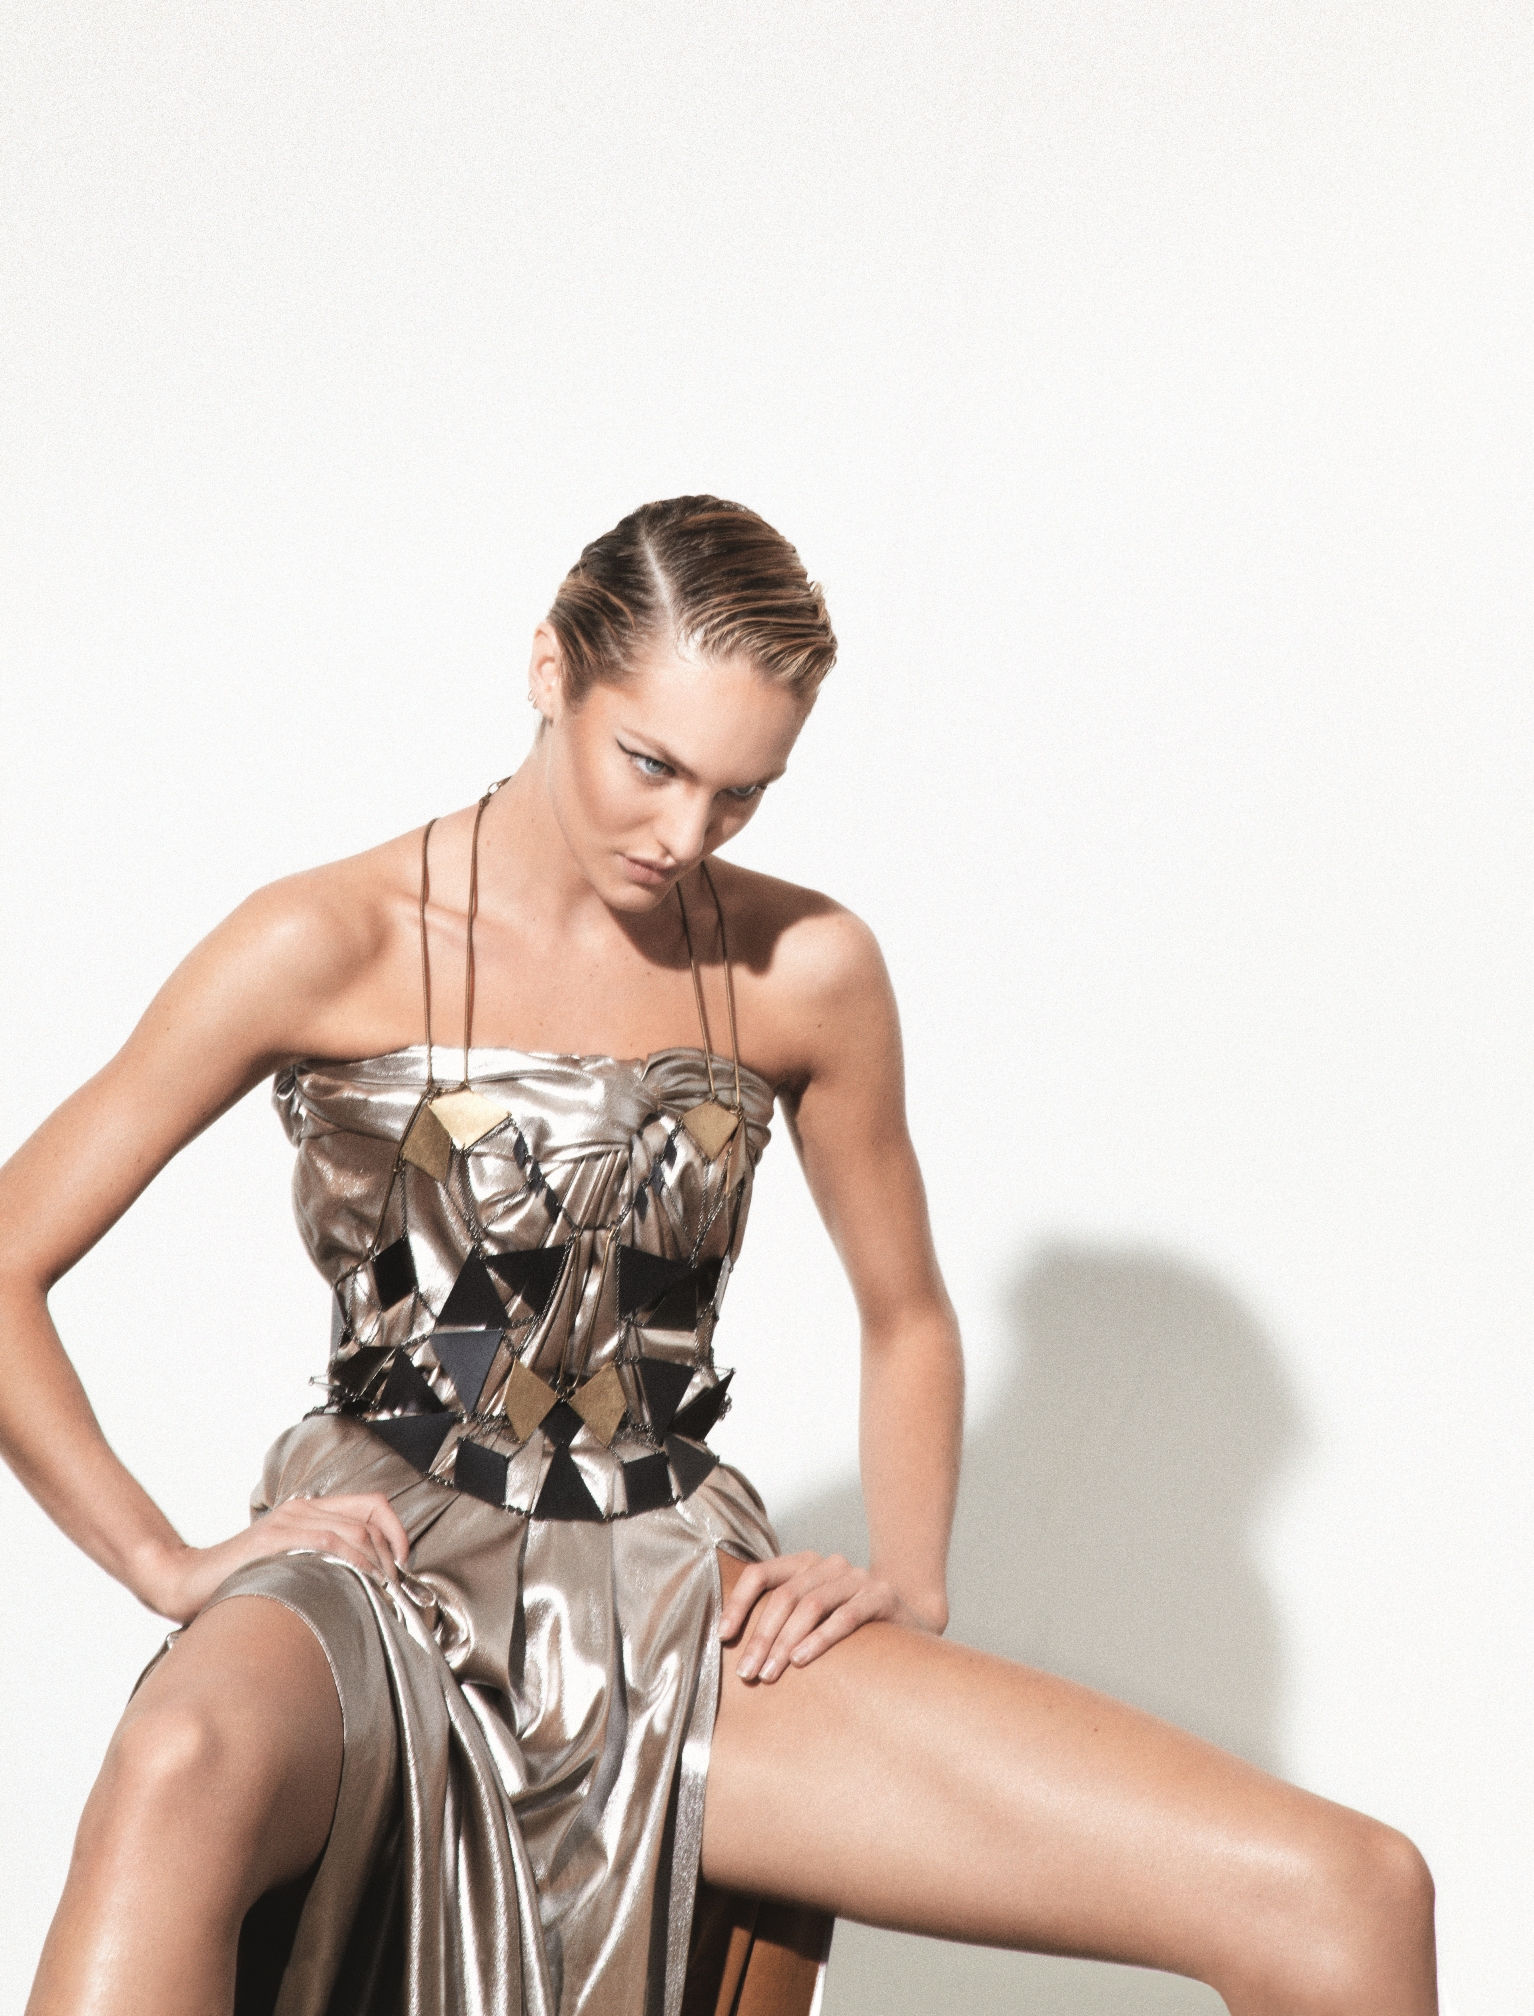 Candice Swanepoel 2012 : candice-swanepoel-collier-schorr-photoshoot-for-muse-magazine-02